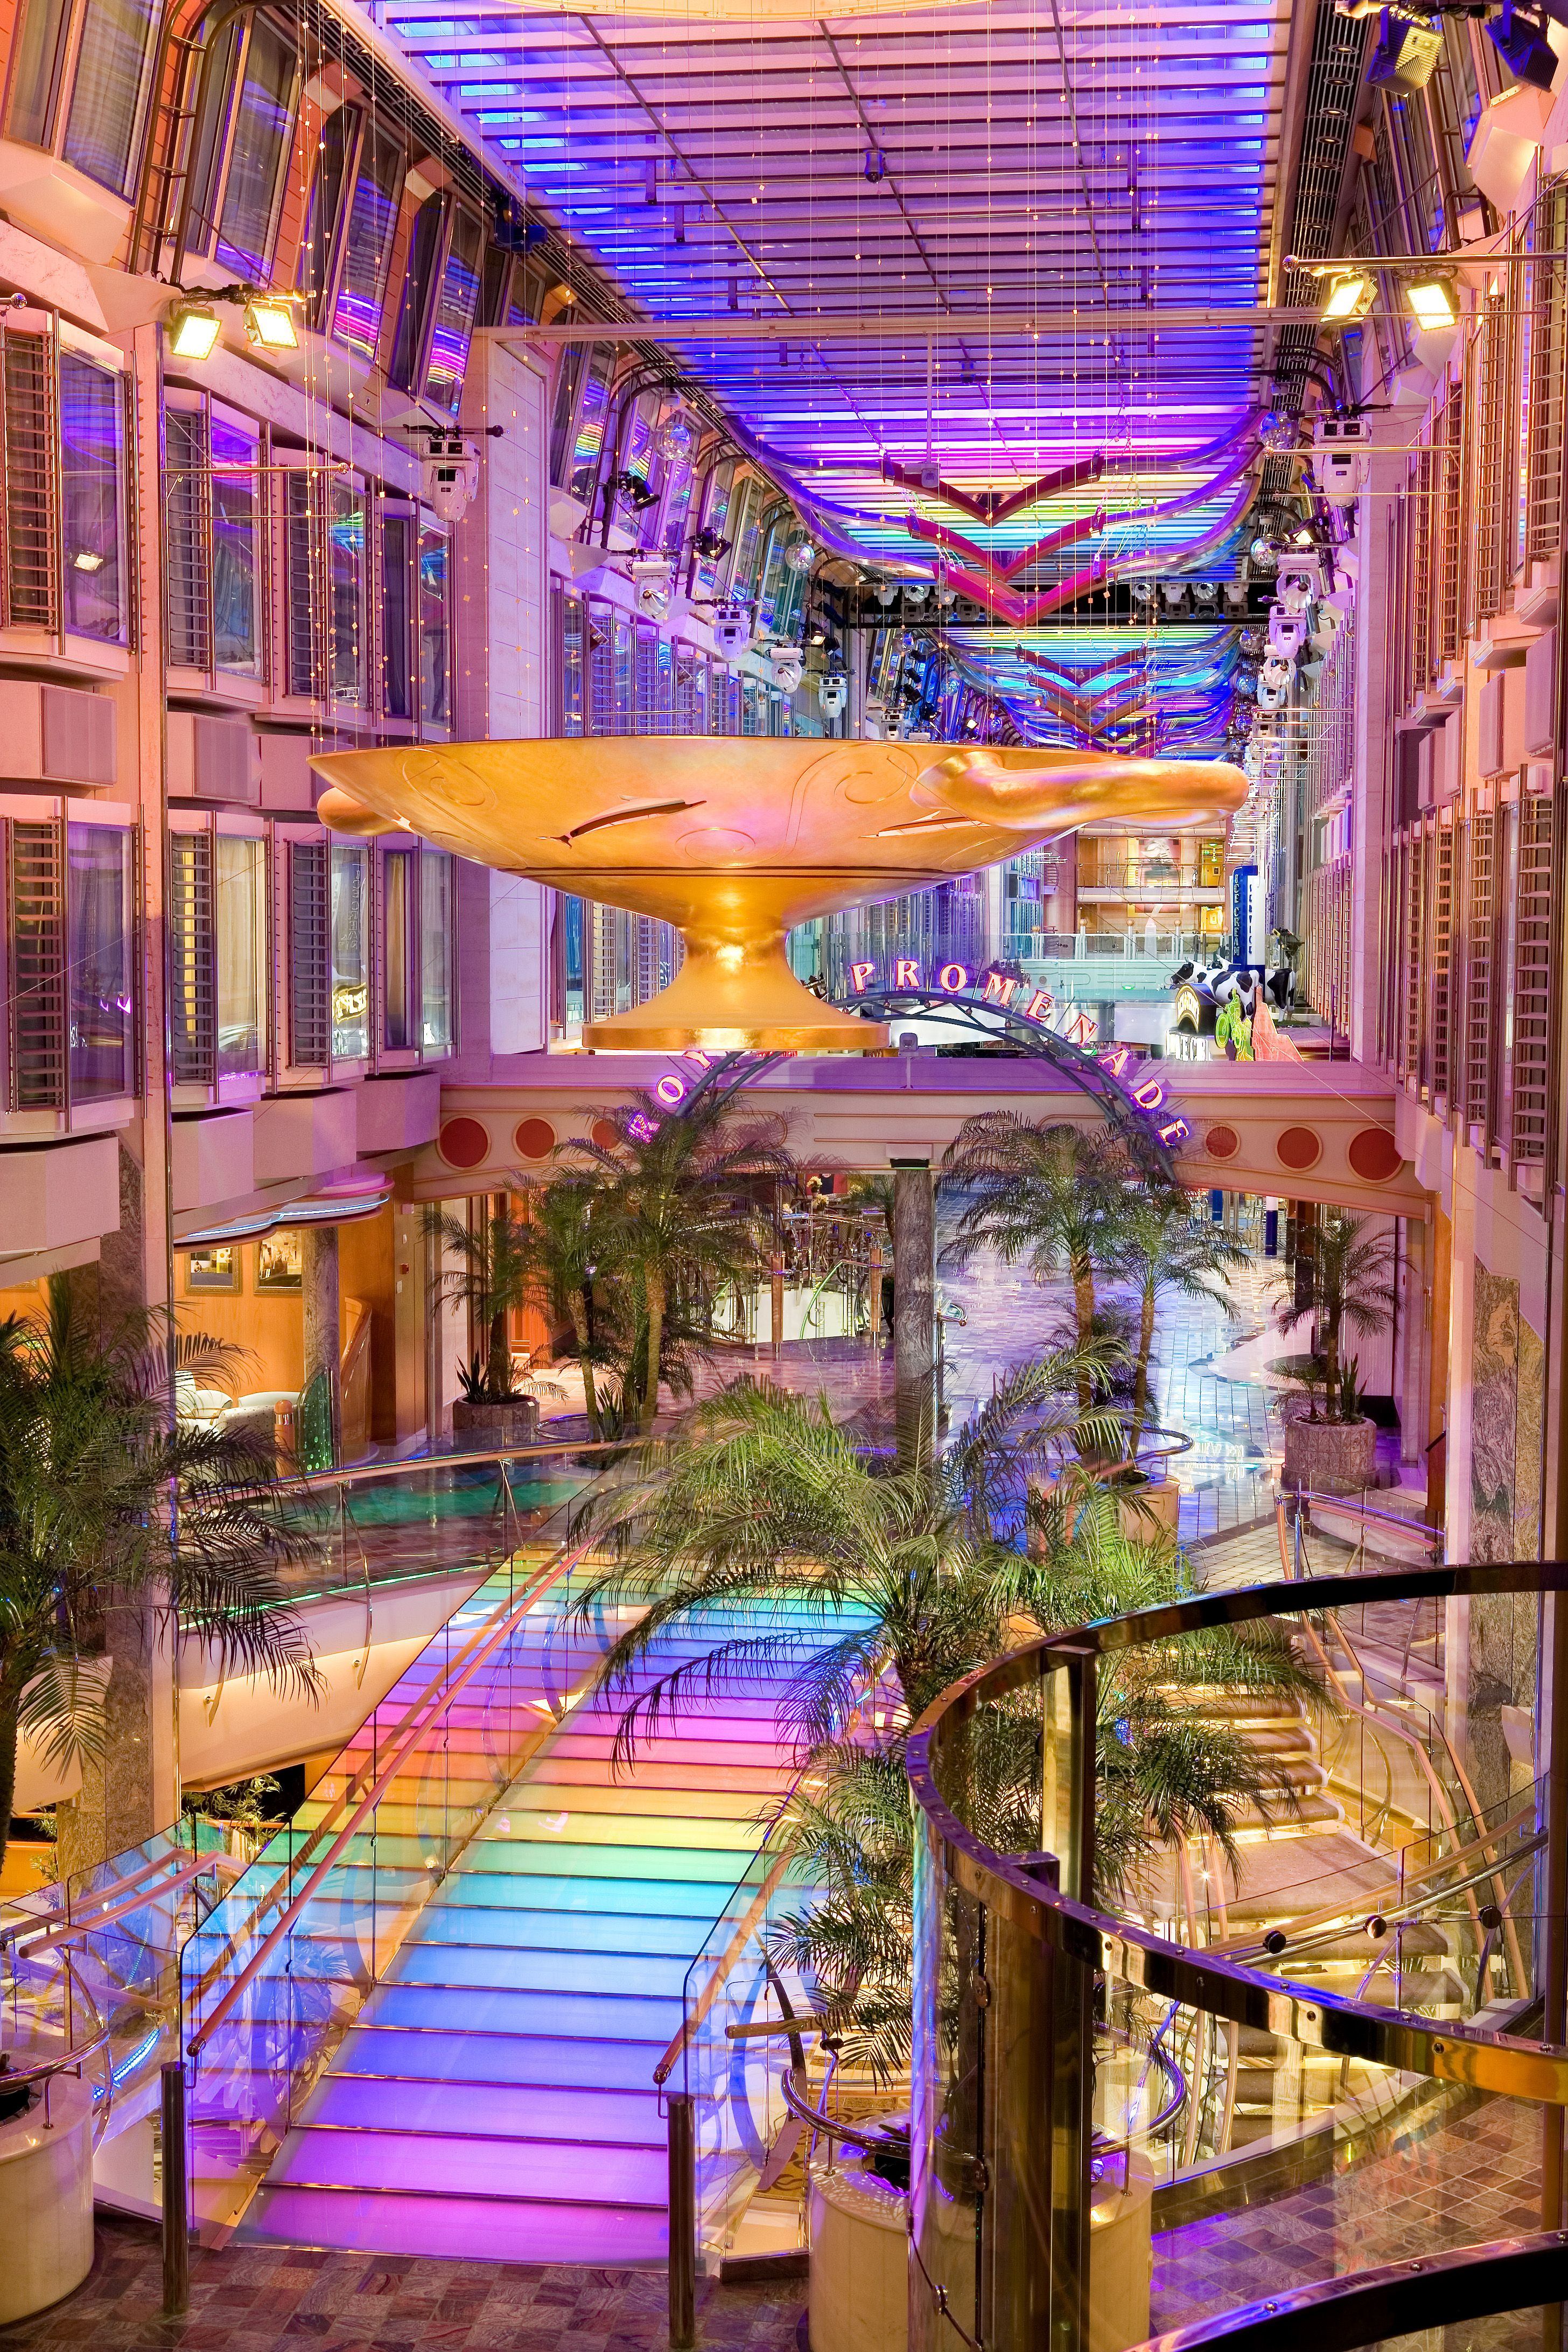 On Board The Royal Caribbean S Independence Of The Seas Cruise Ships Interior Independence Of The Seas Liberty Of The Seas